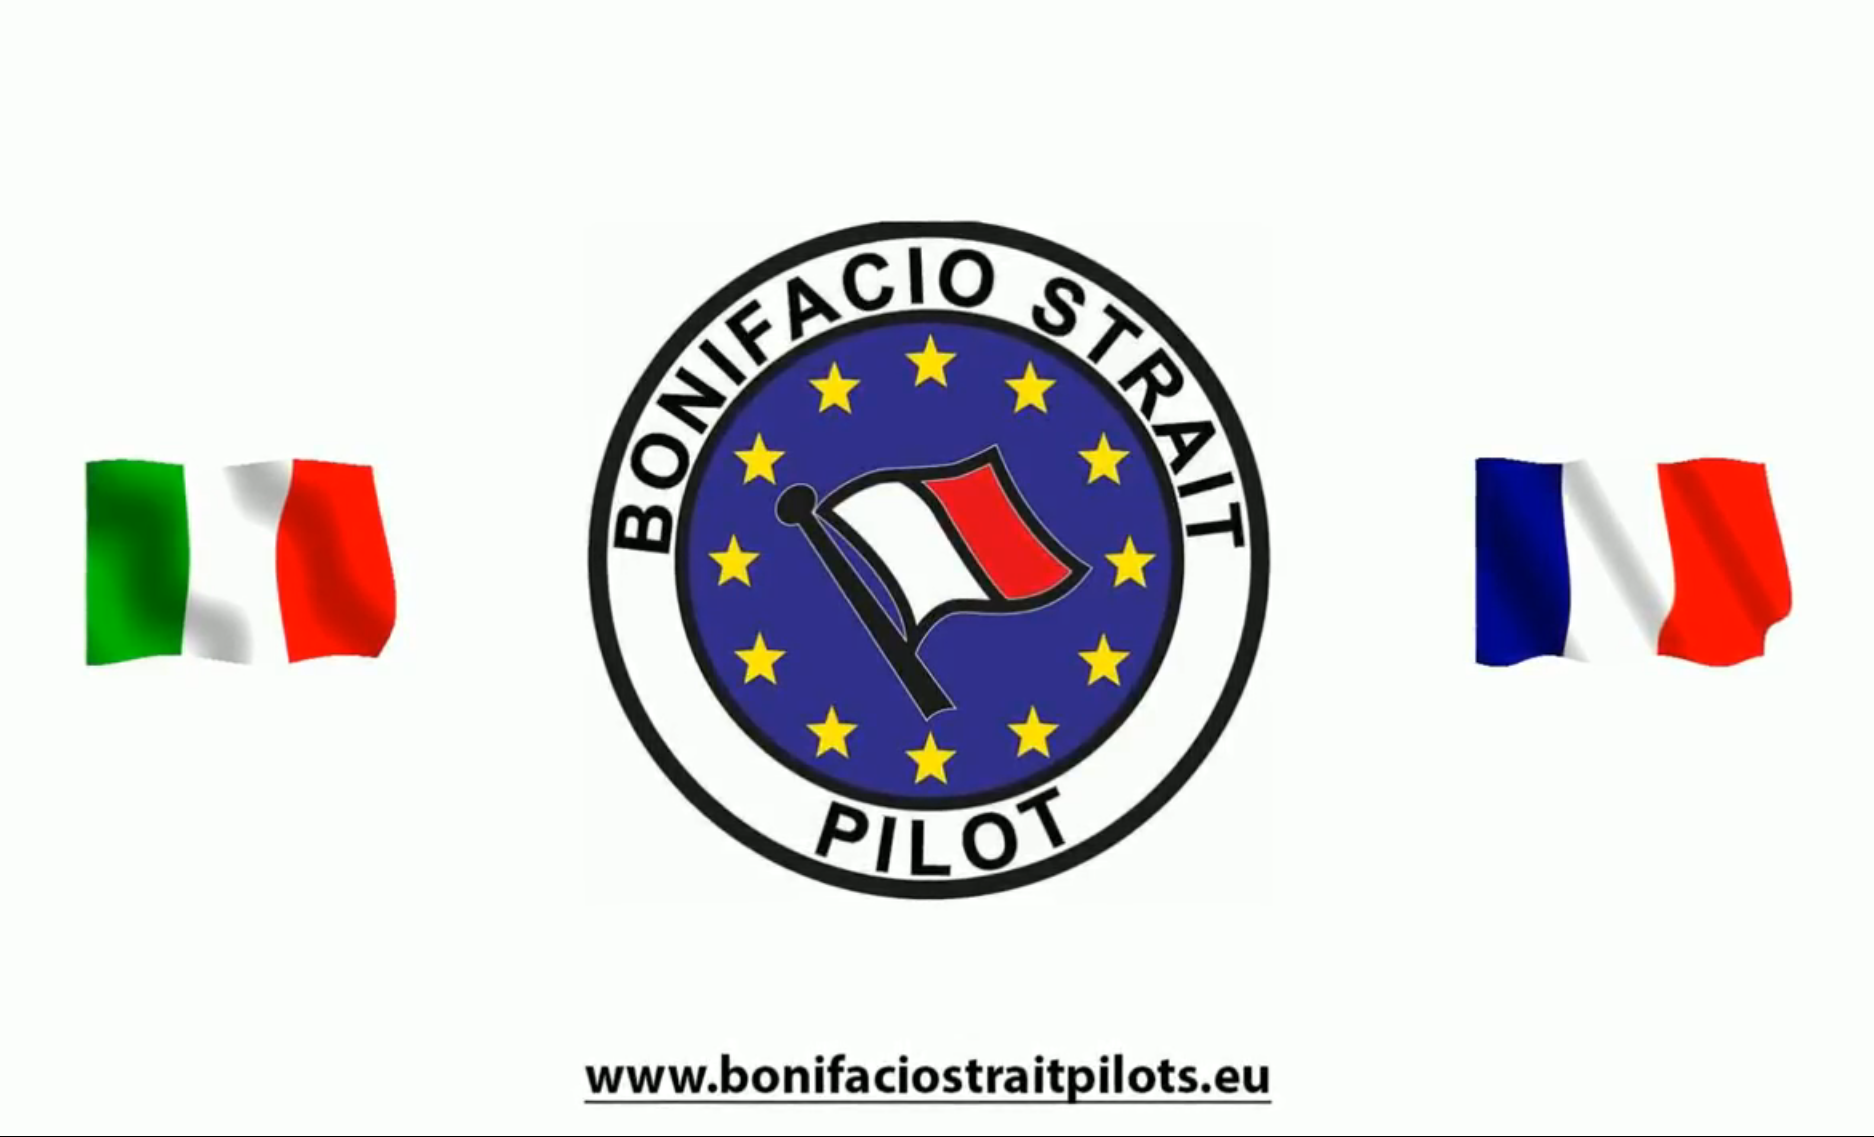 BONIFACIO STRAIT PILOTS - video application Blu Economy Awards